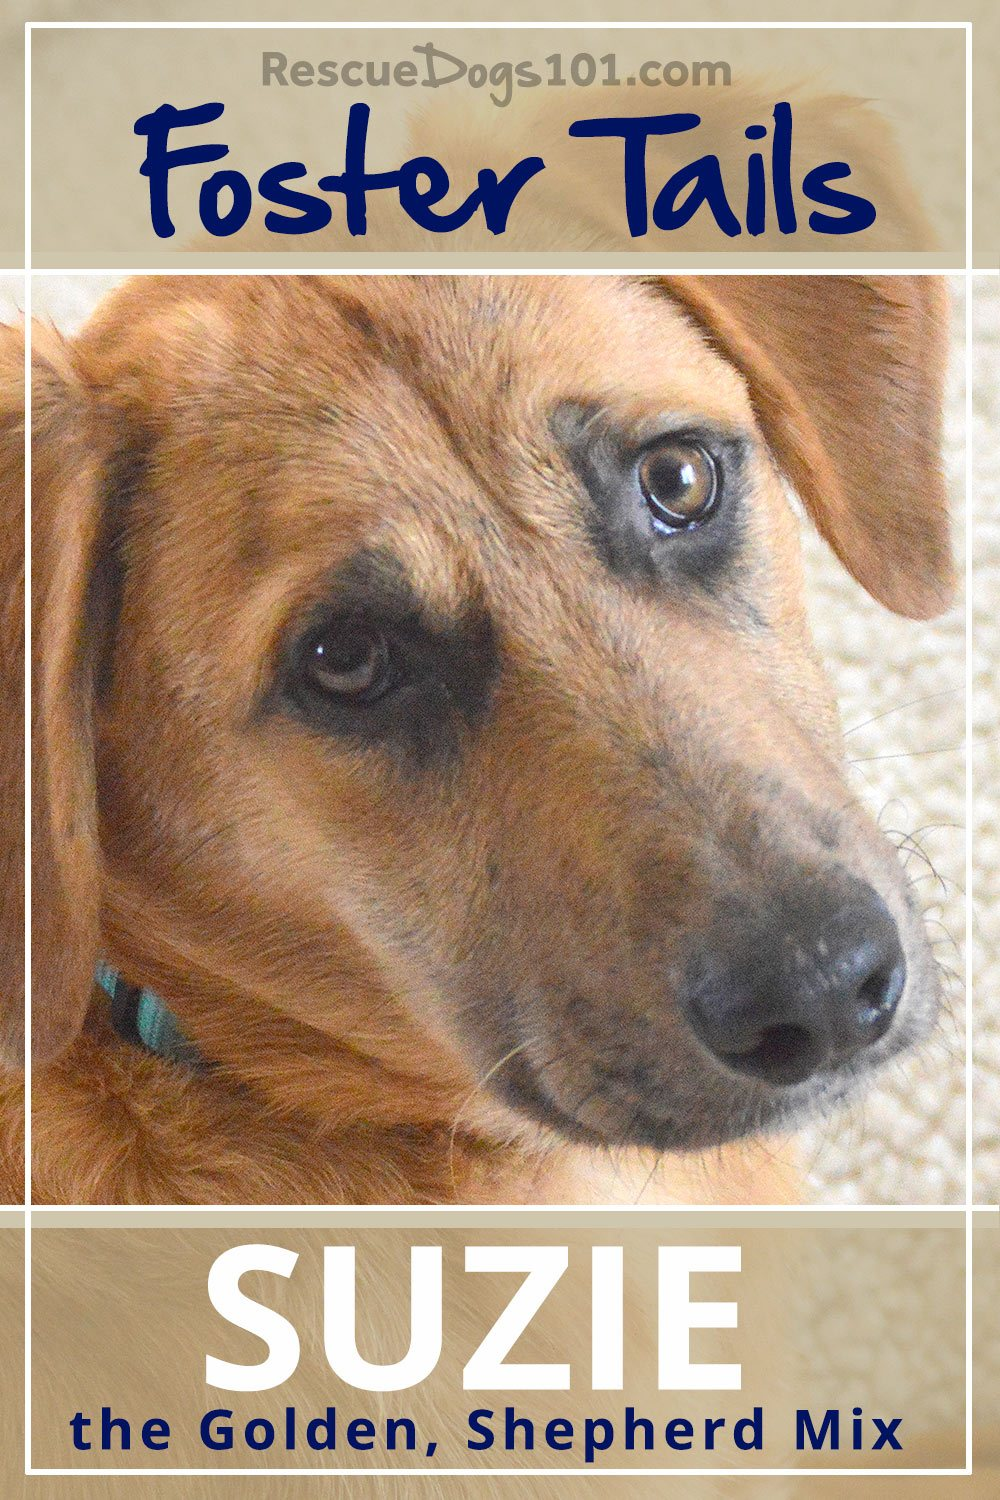 Foster Dog Tails, Suzie the Golden, Shepherd Mix – Our story about being Suzie's foster family